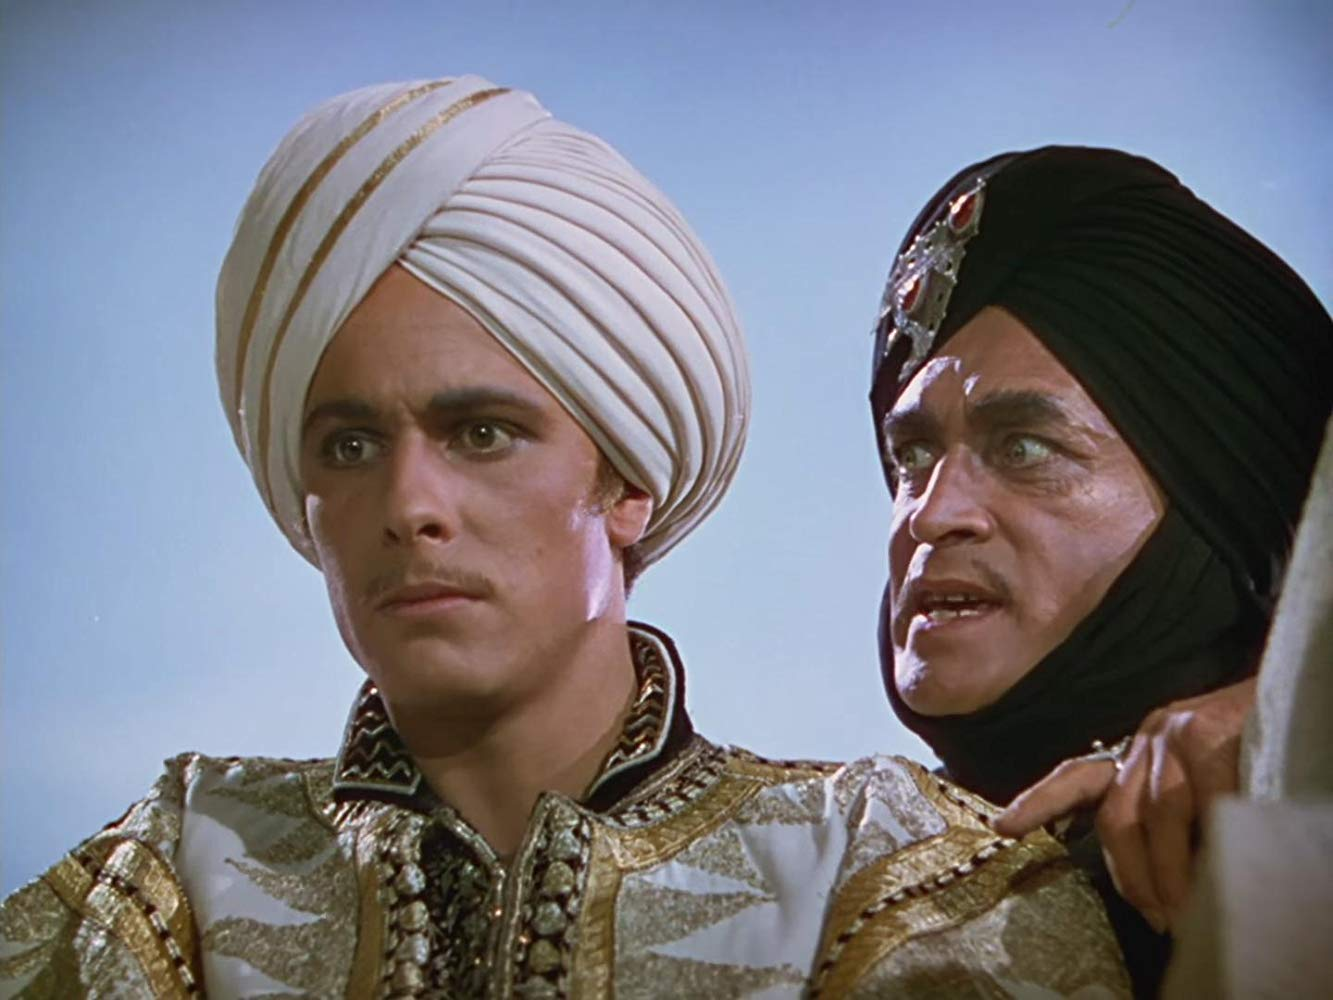 (l to r) Prince Ahmed (John Justin) and the evil Grand Vizier Jaffar (Conrad Veidt) in The Thief of Bagdad (1940)